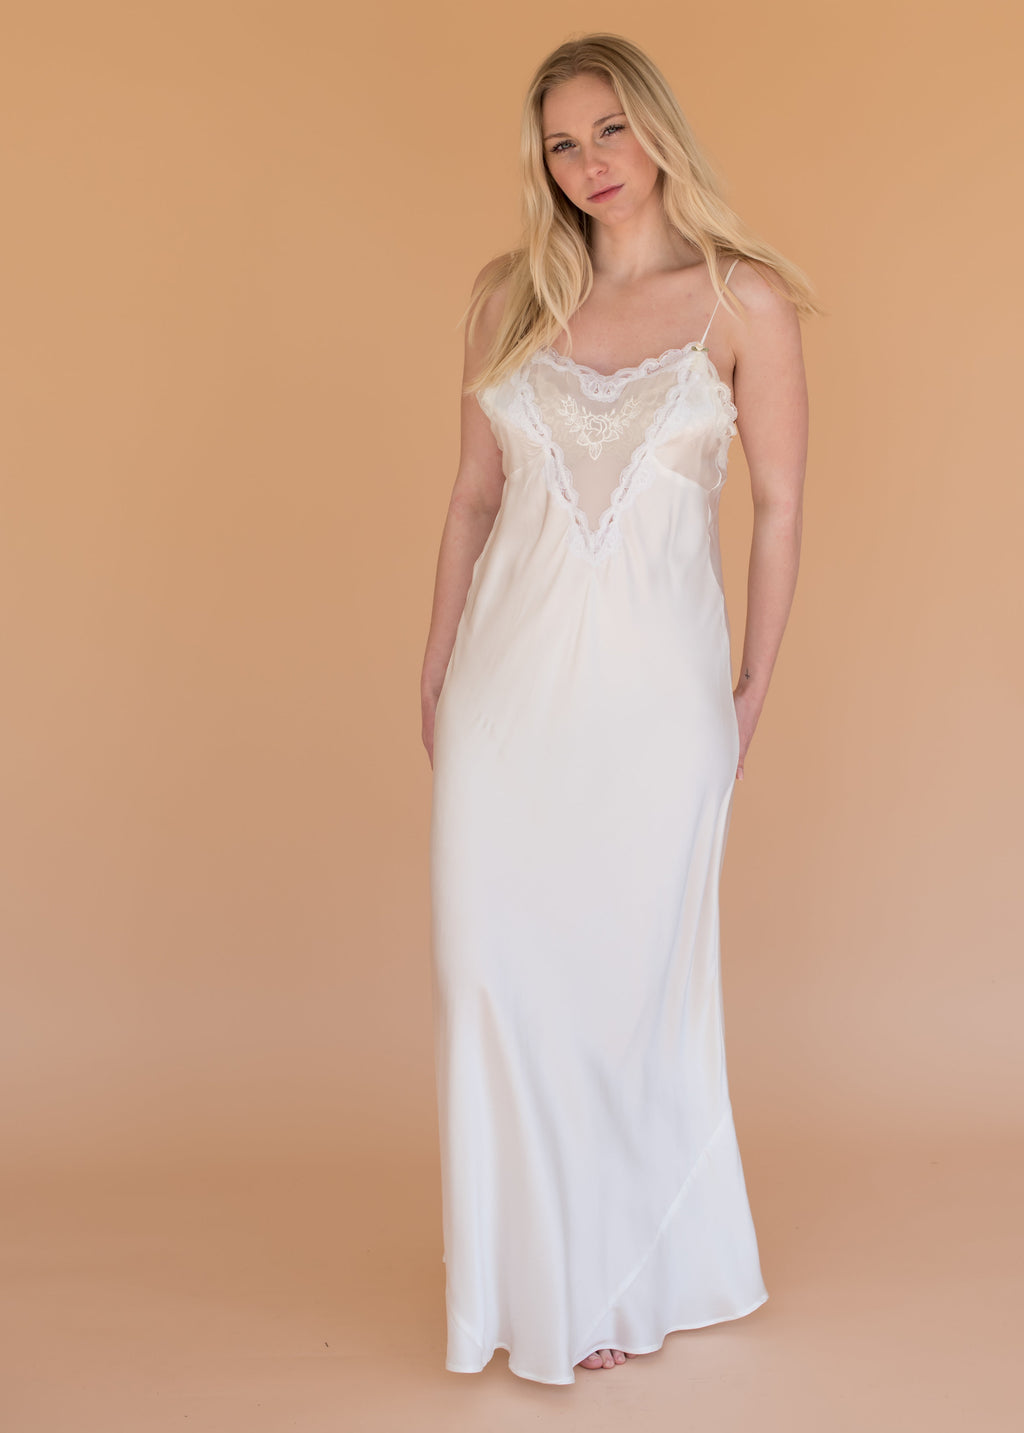 Women's Intimates - The Topaz Slip - White Silk and Lace Dress